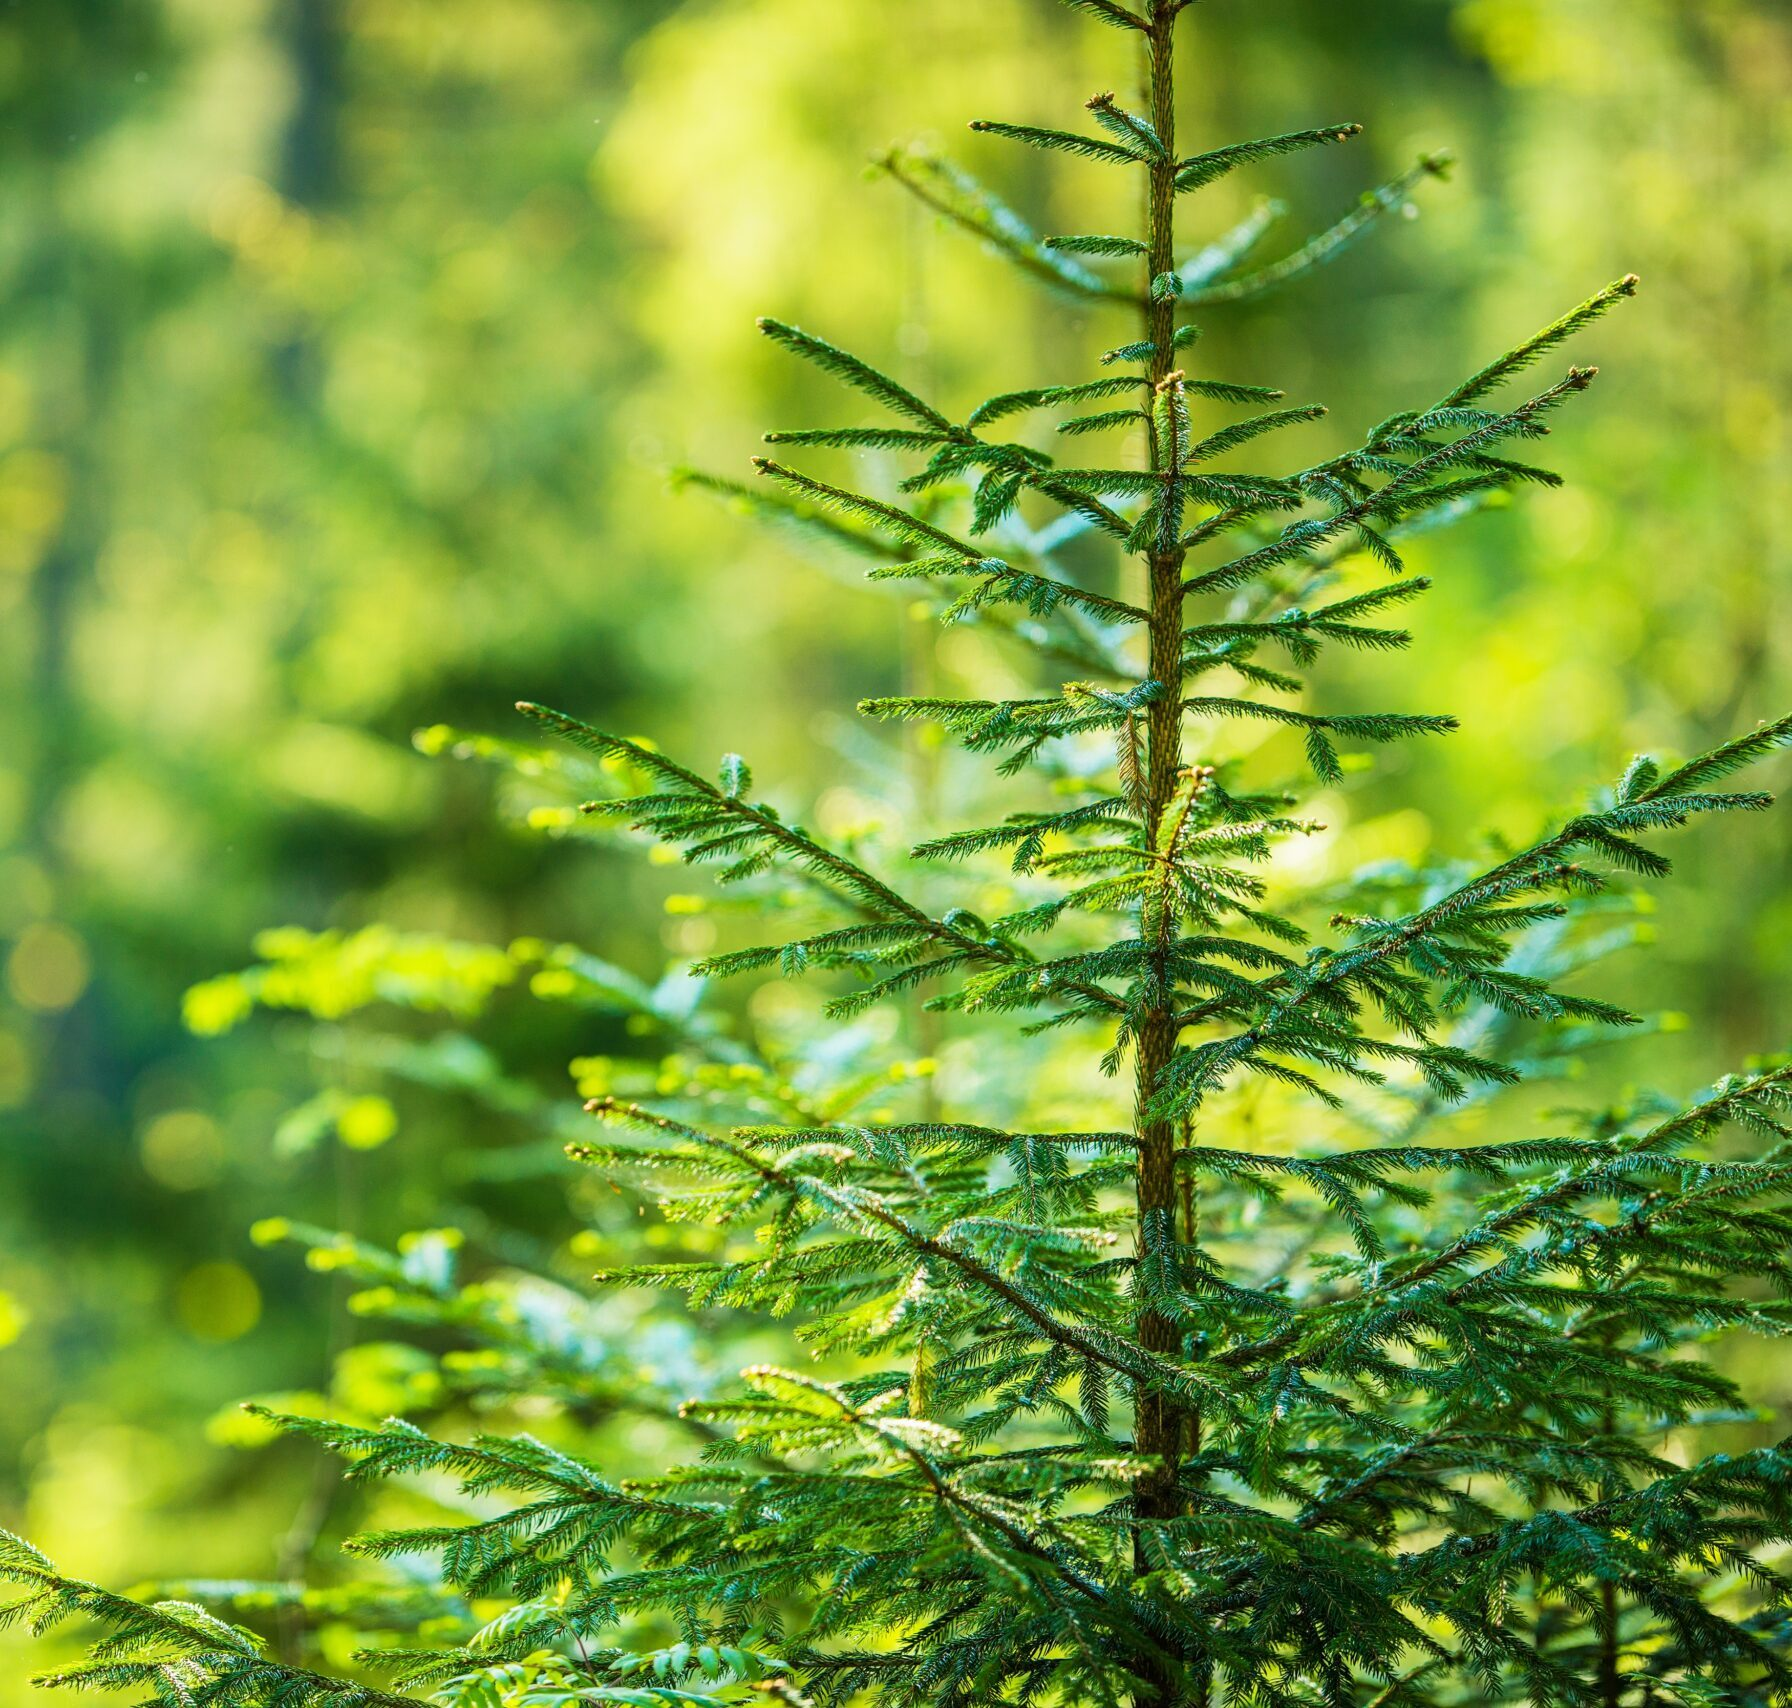 How will COVID-19 Impact Timber Investments? Part III